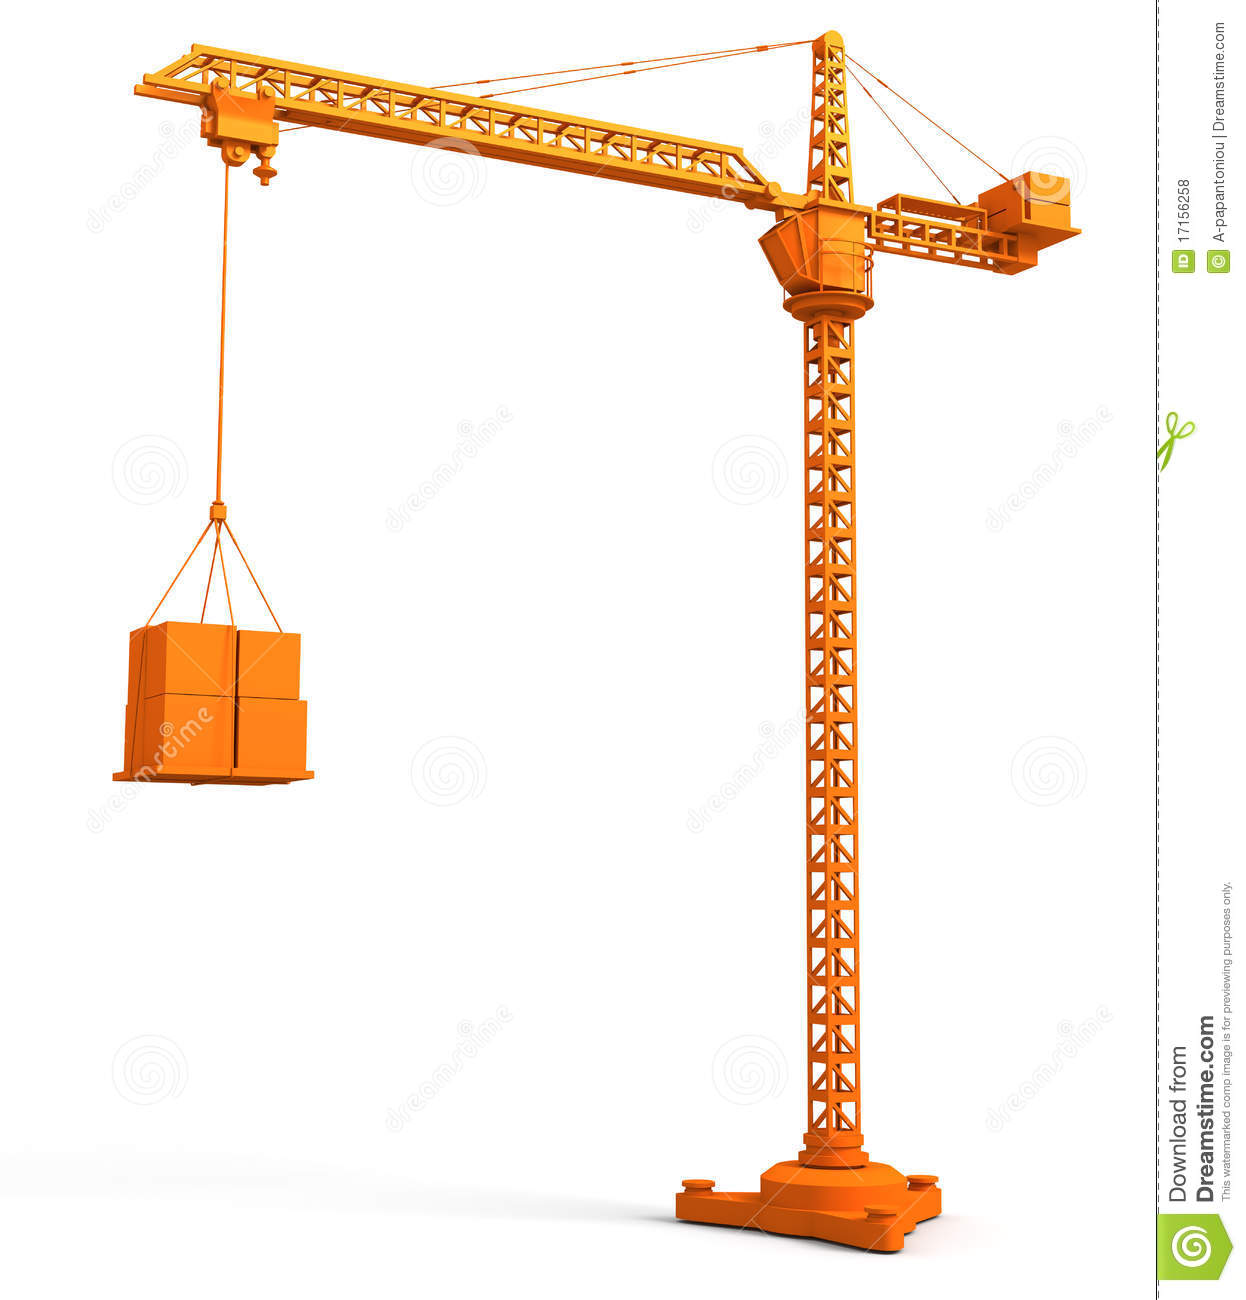 Tower crane stock illustration illustration of for The crain